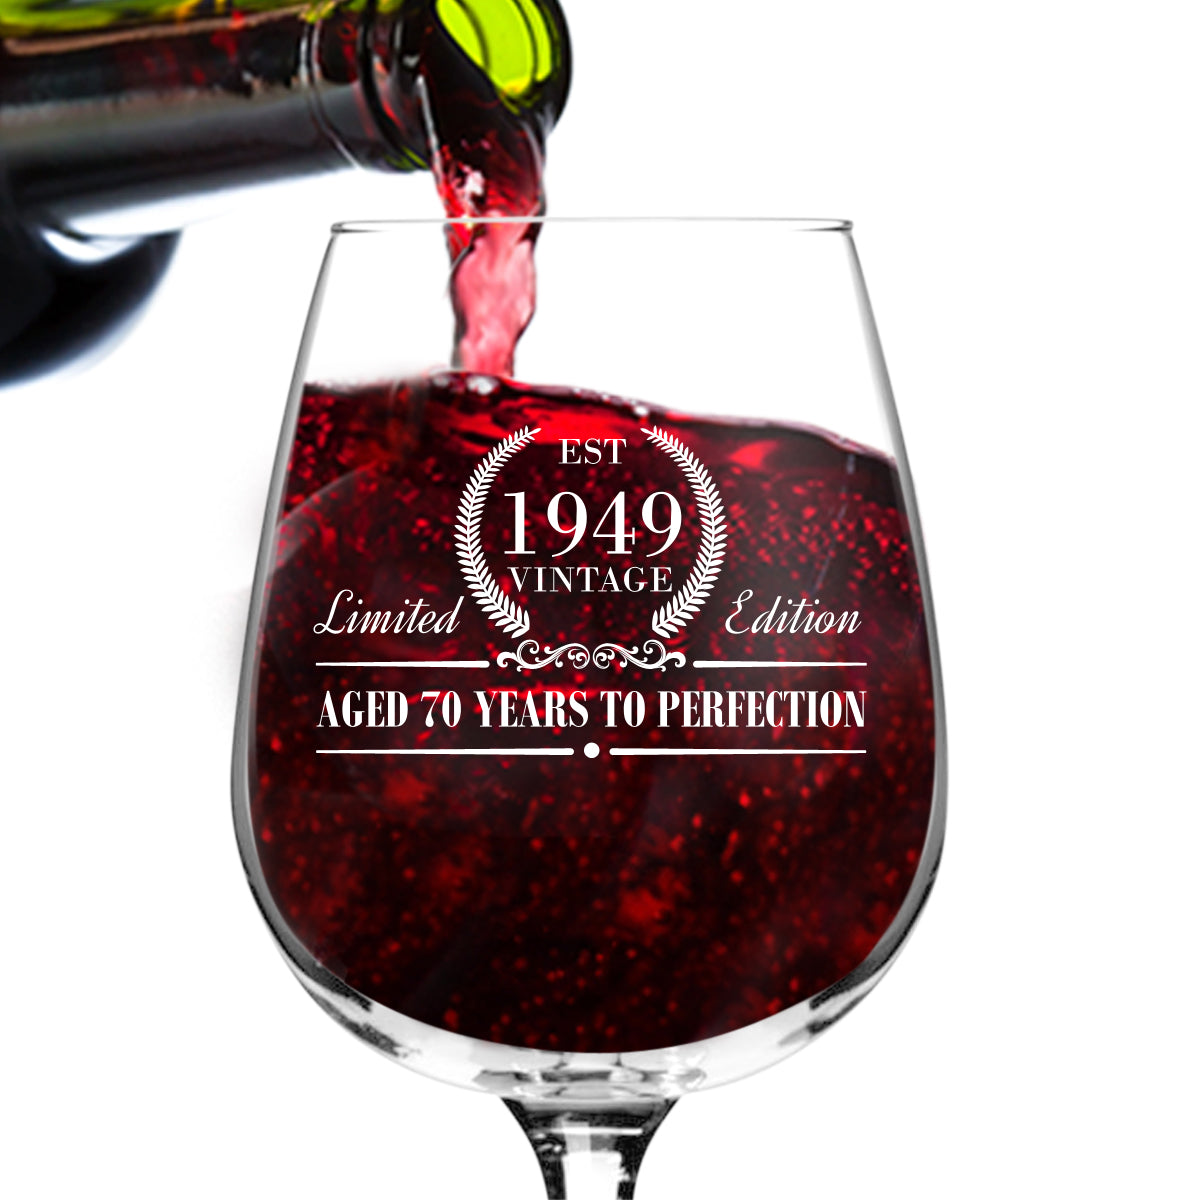 1949 Vintage Edition Birthday Wine Glass for Men and Women (70th Anniversary) 12 oz, Elegant Happy Birthday Wine Glasses for Red or White Wine | Classic Birthday Gift, Reunion Gift for Him or Her